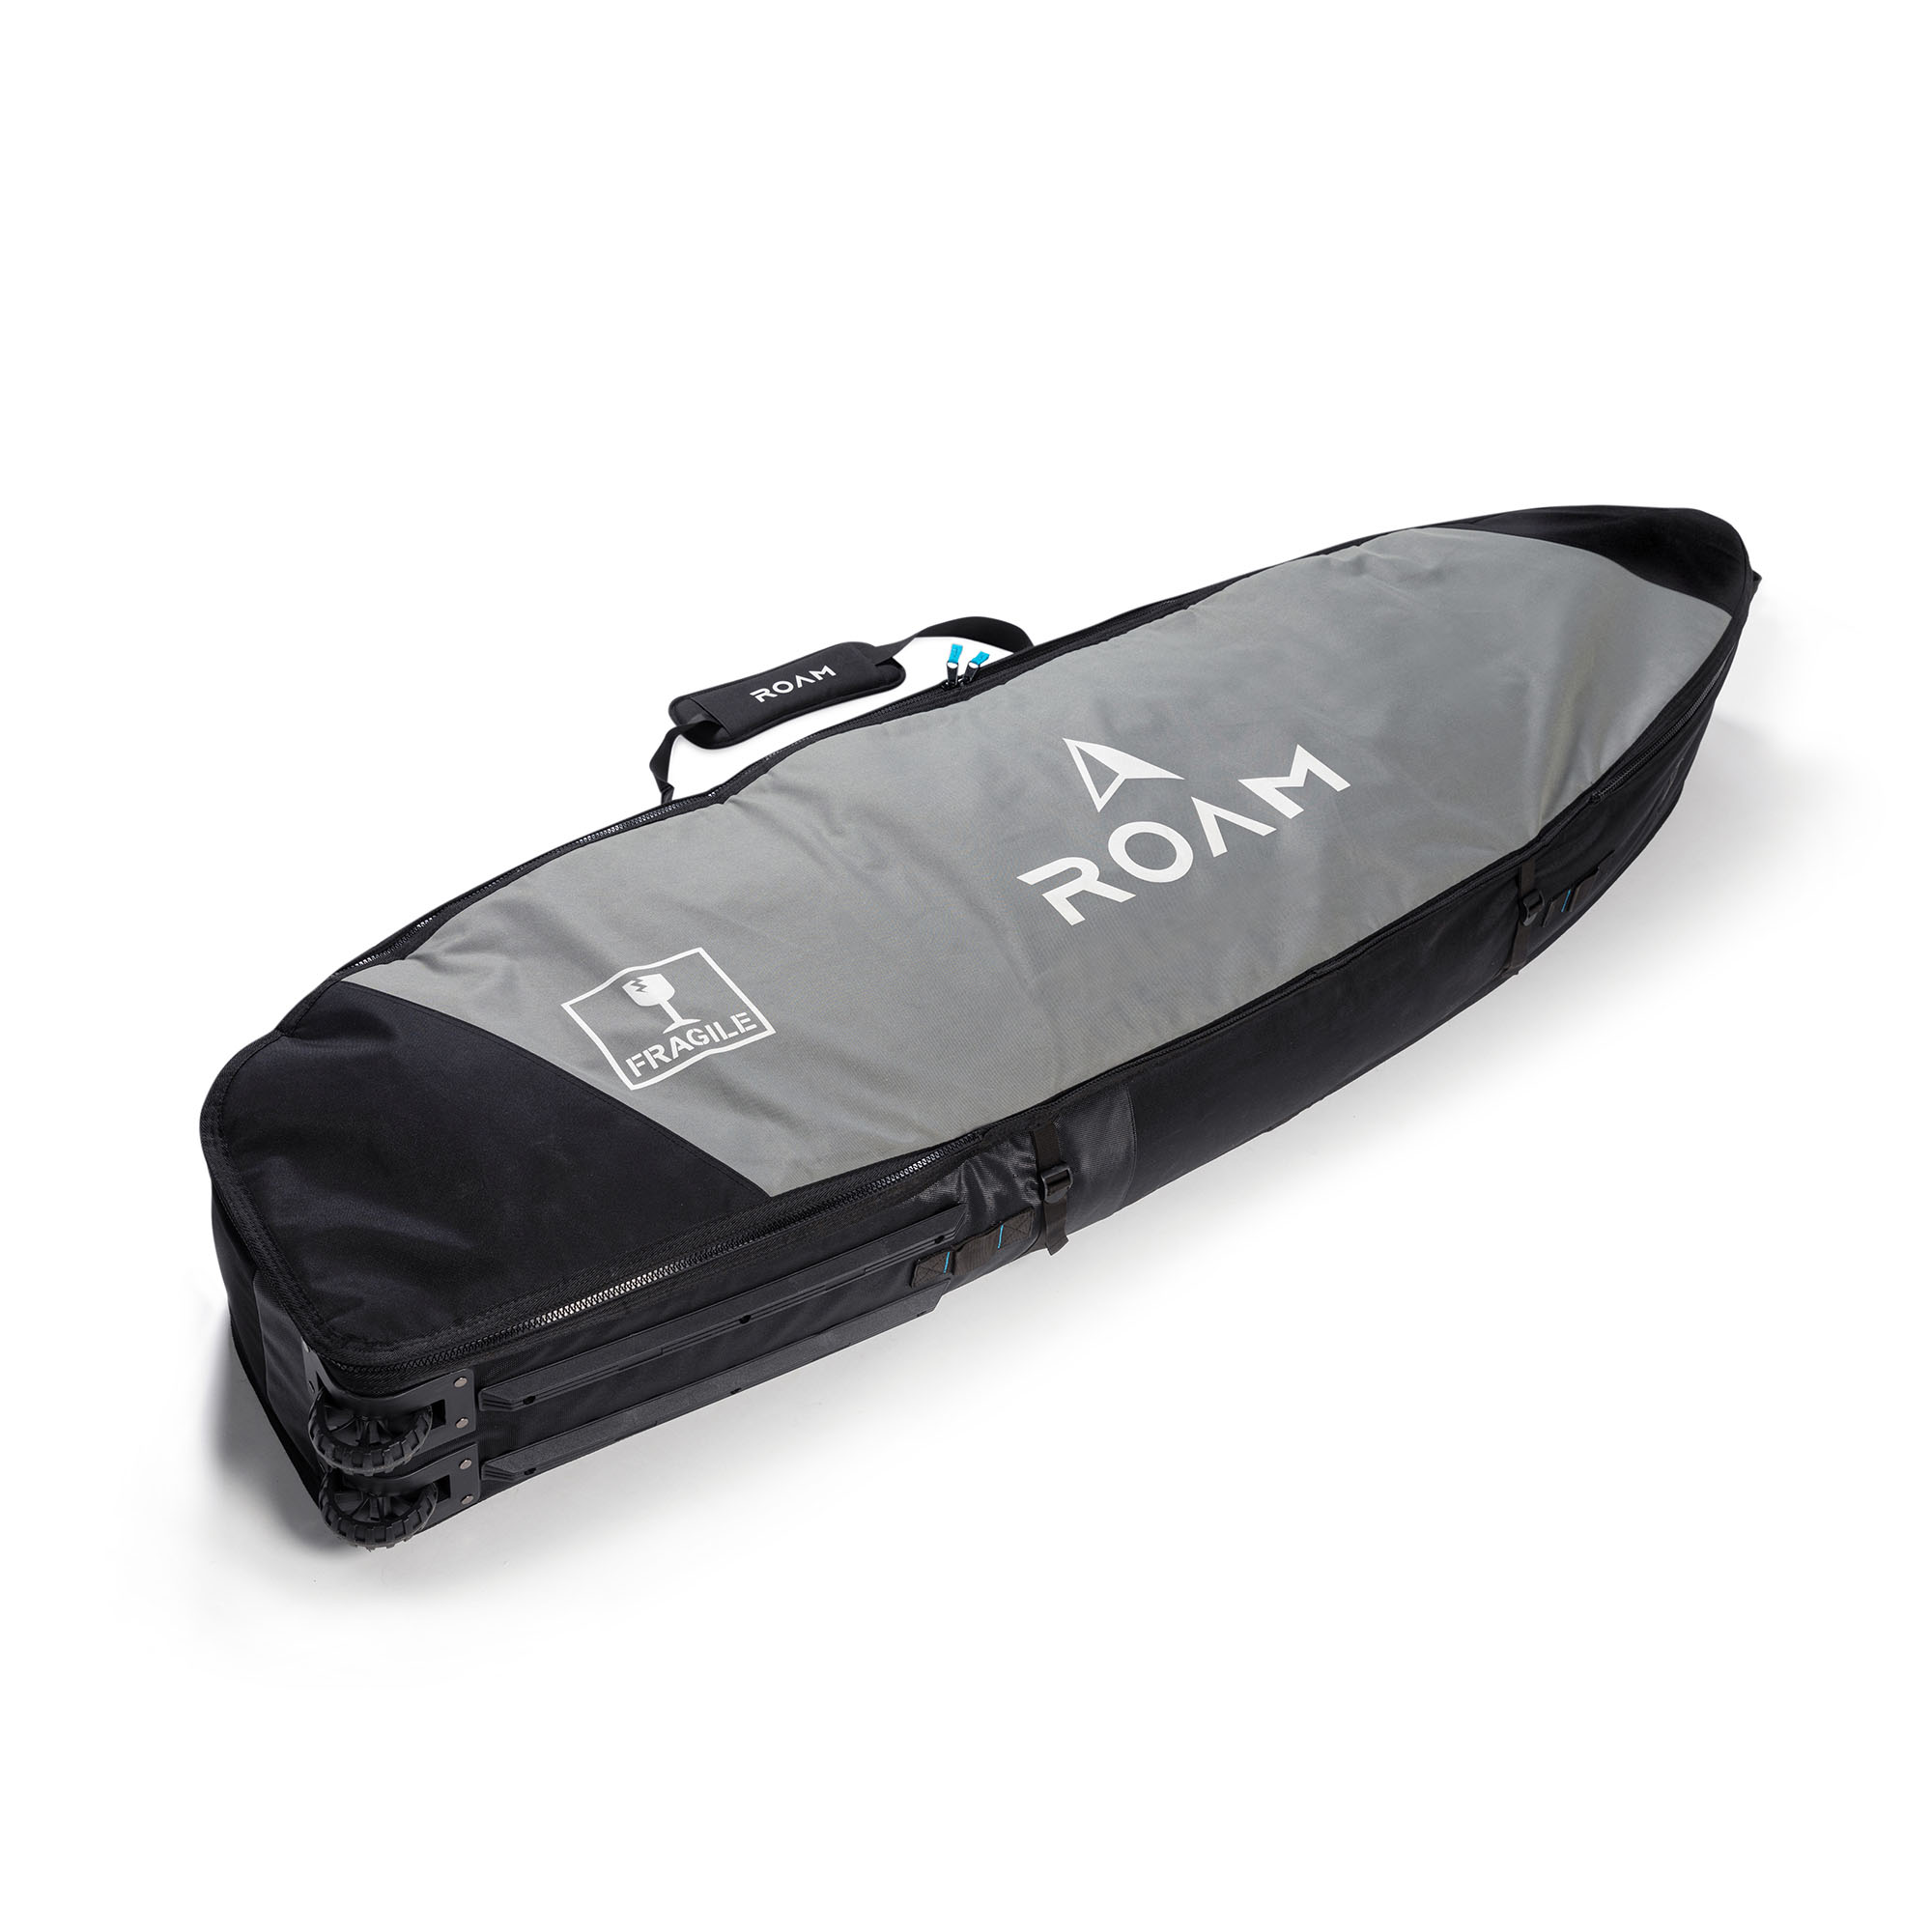 ROAM Boardbag Surfboard Coffin Wheelie 7.0